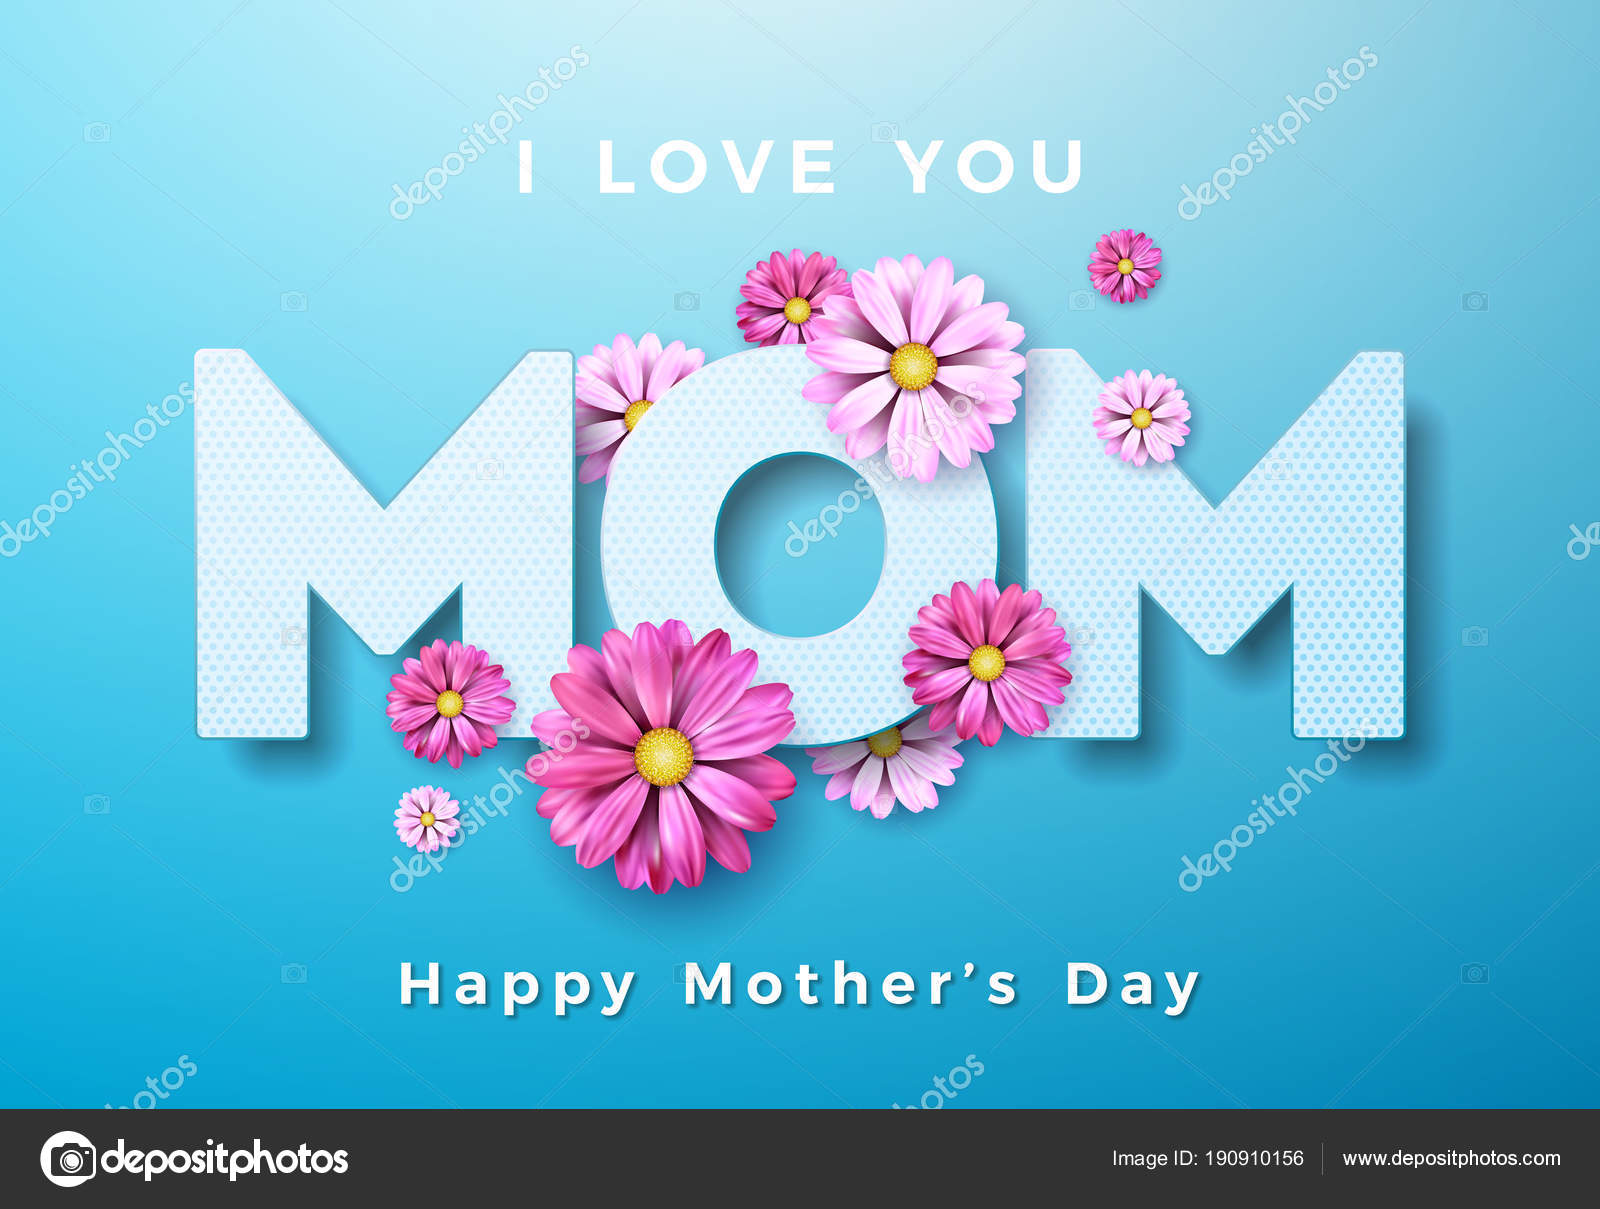 Happy Mothers Day Greeting Card Design With Flower And I Love You